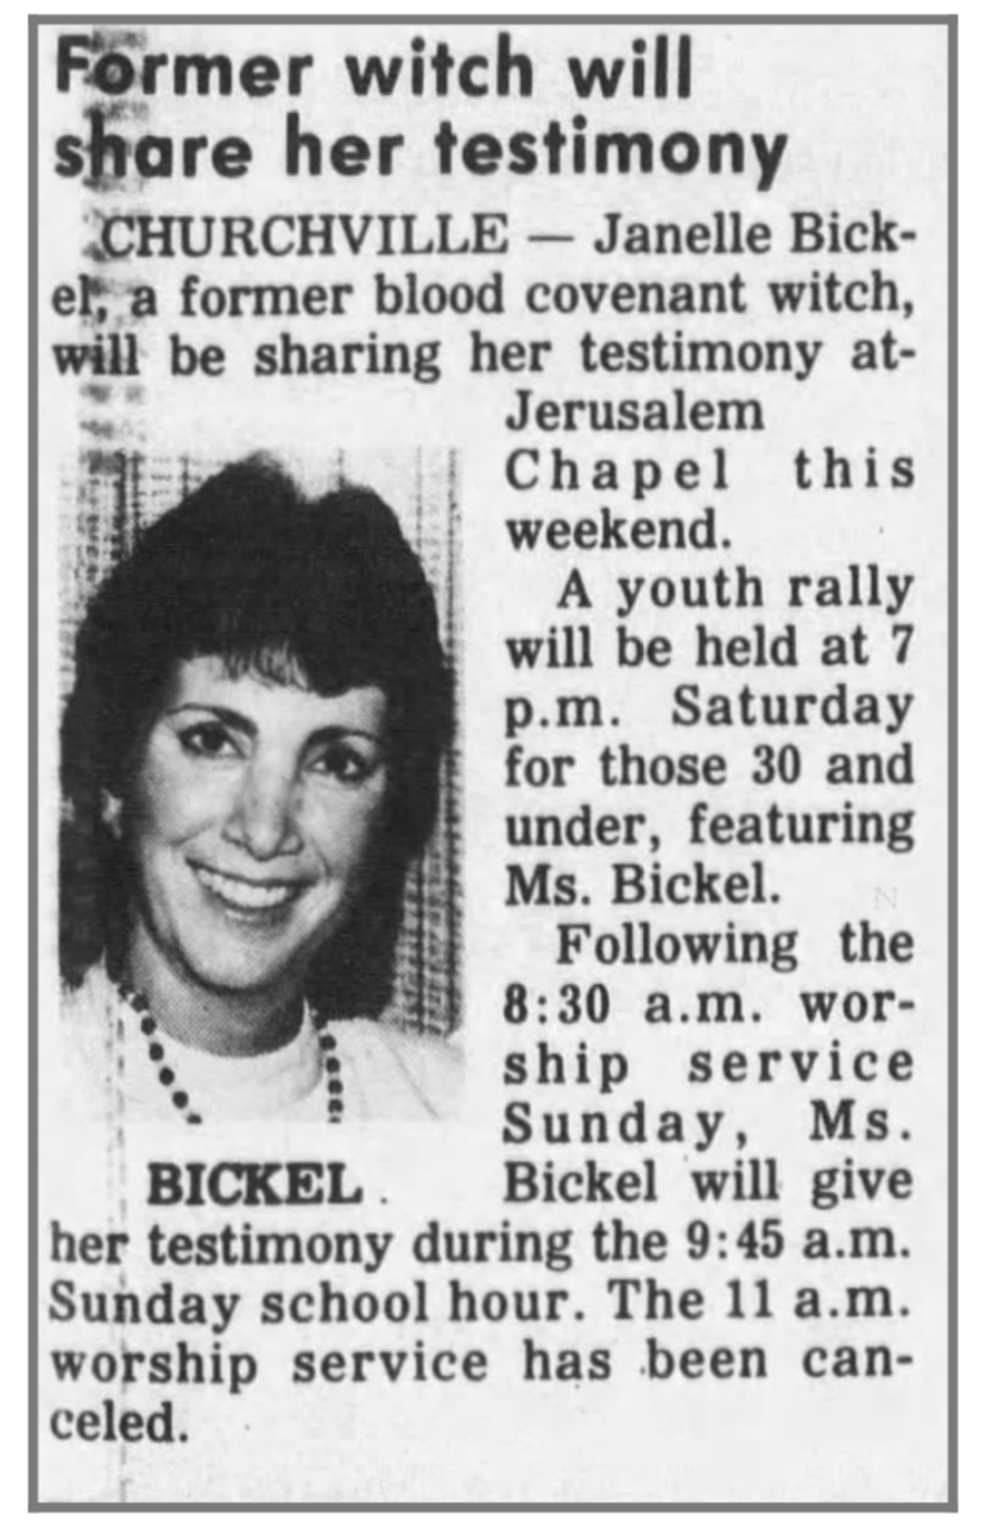 Janelle Bickel, now Janelle Wade of Just Believe Ministries, spoke on several occasions in Staunton area churches about the dangers of witchcraft.